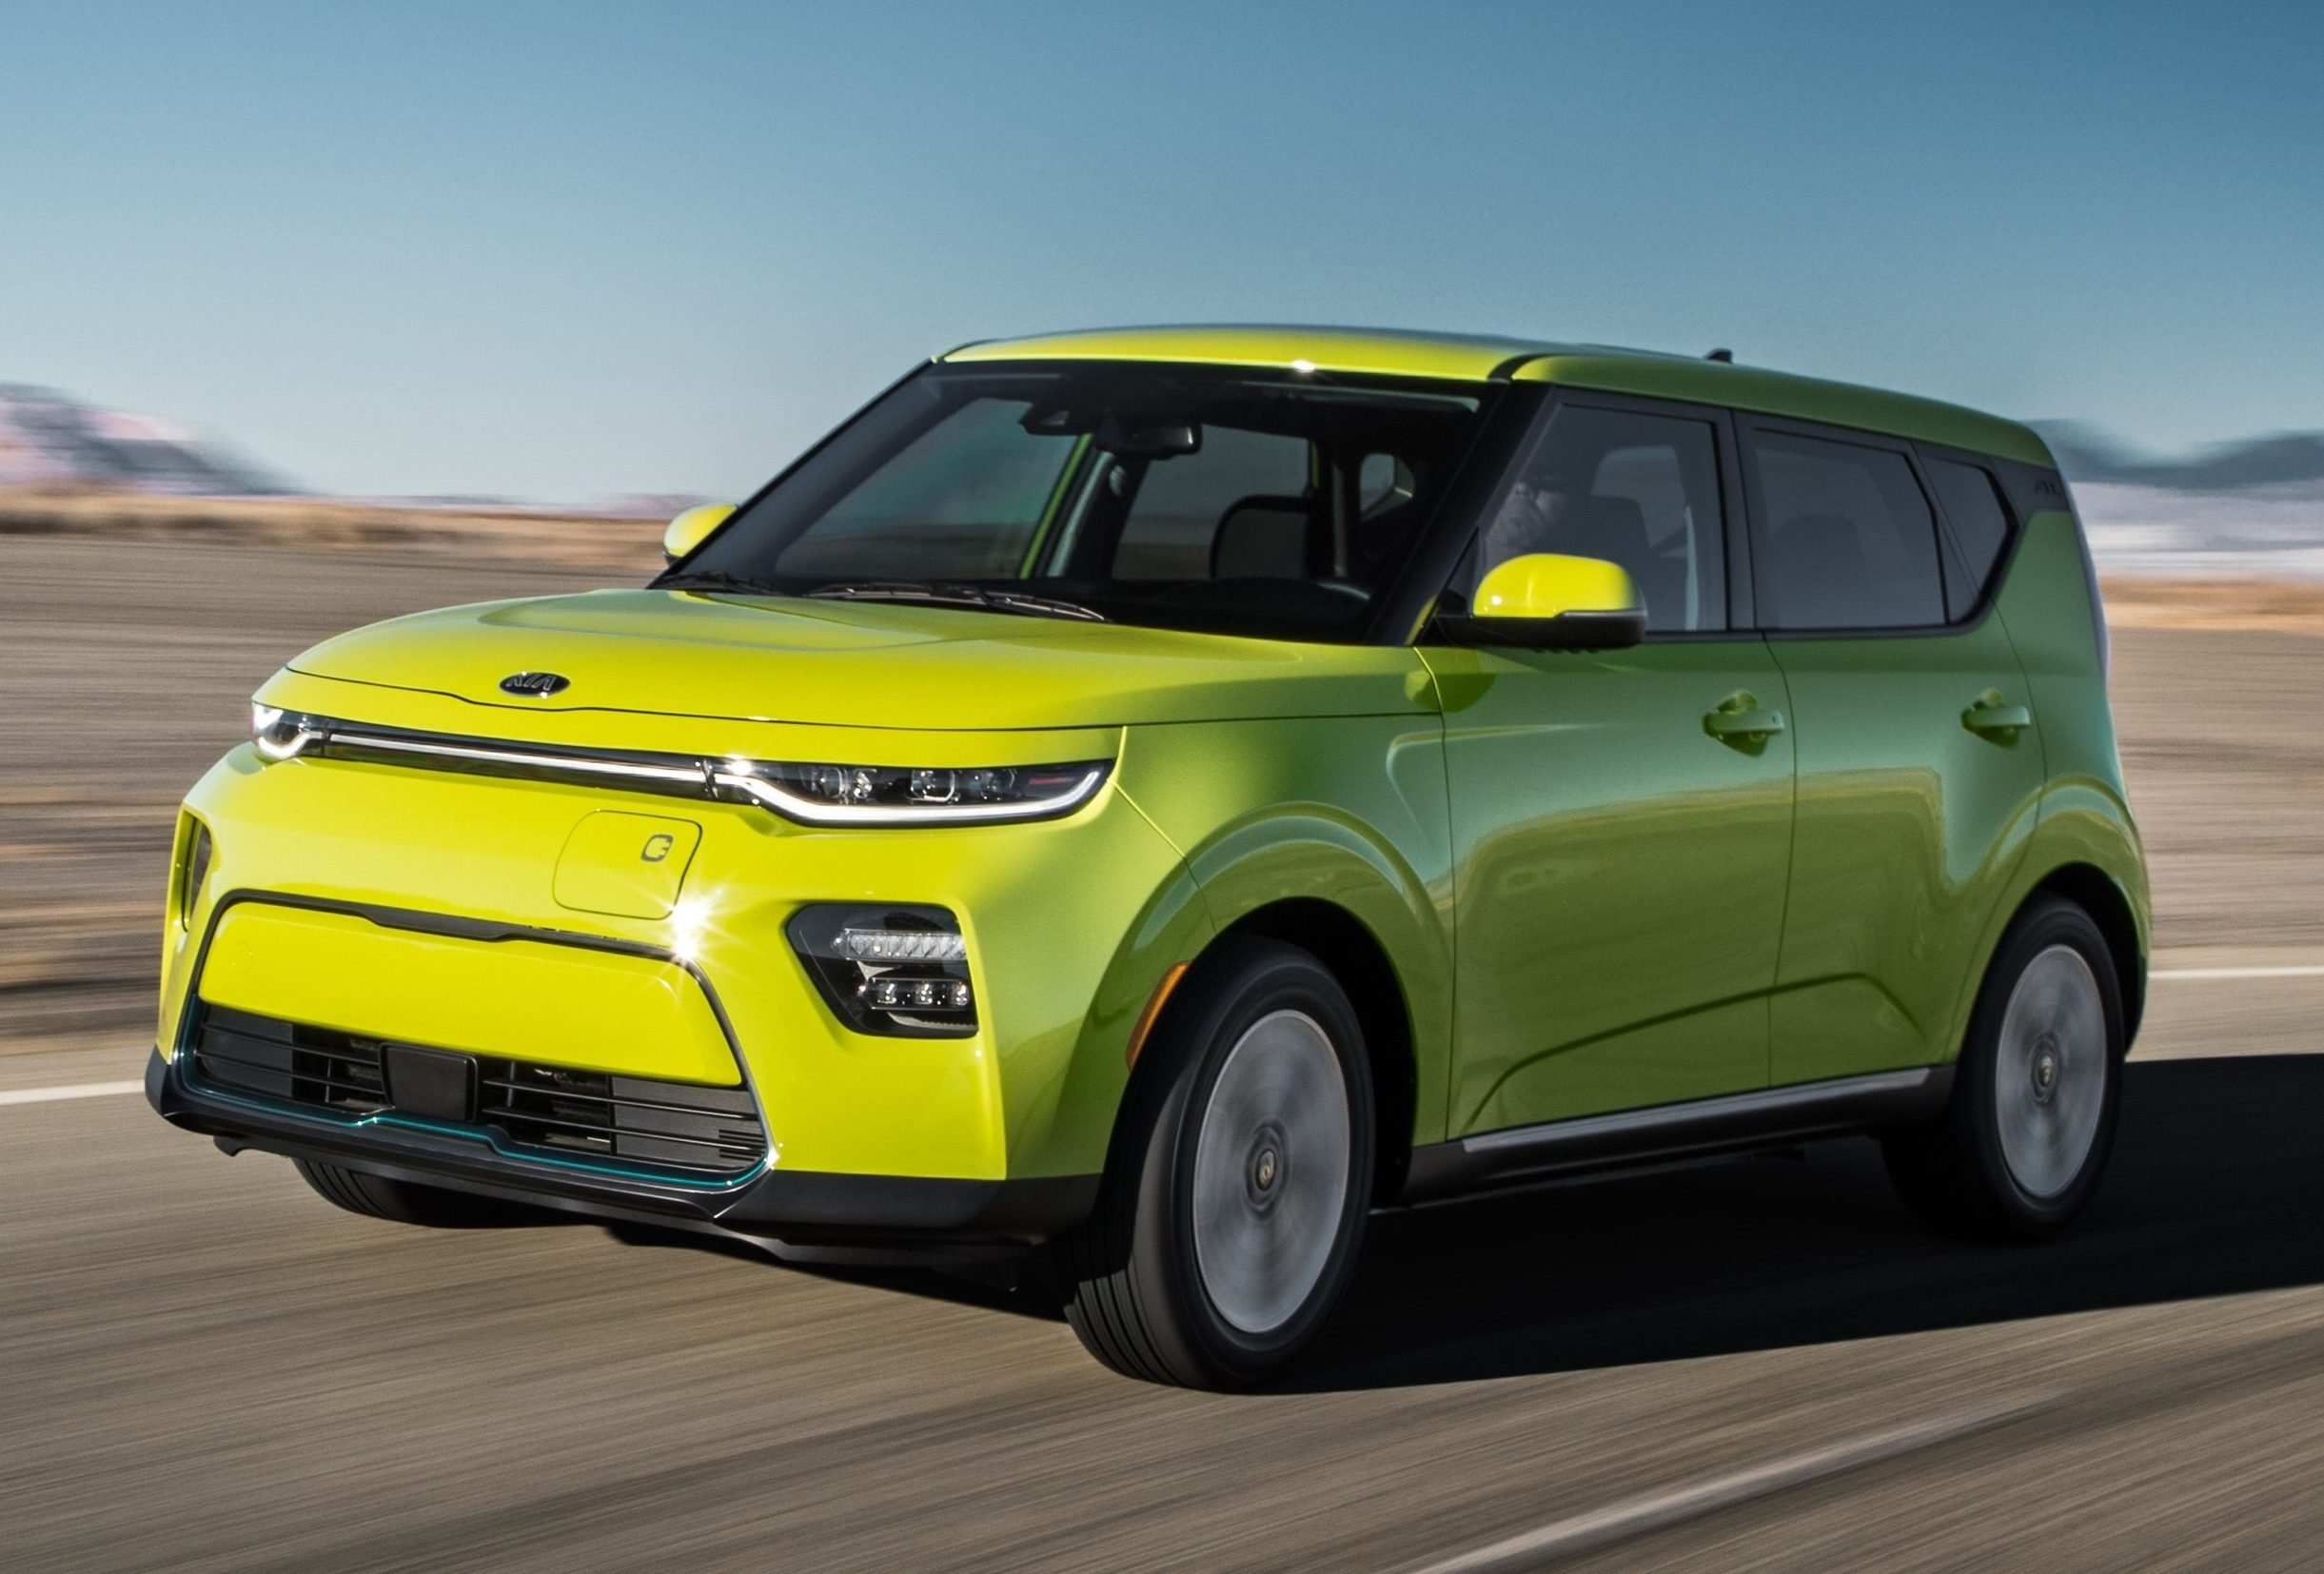 62 All New 2020 Kia Soul Redesign And Concept